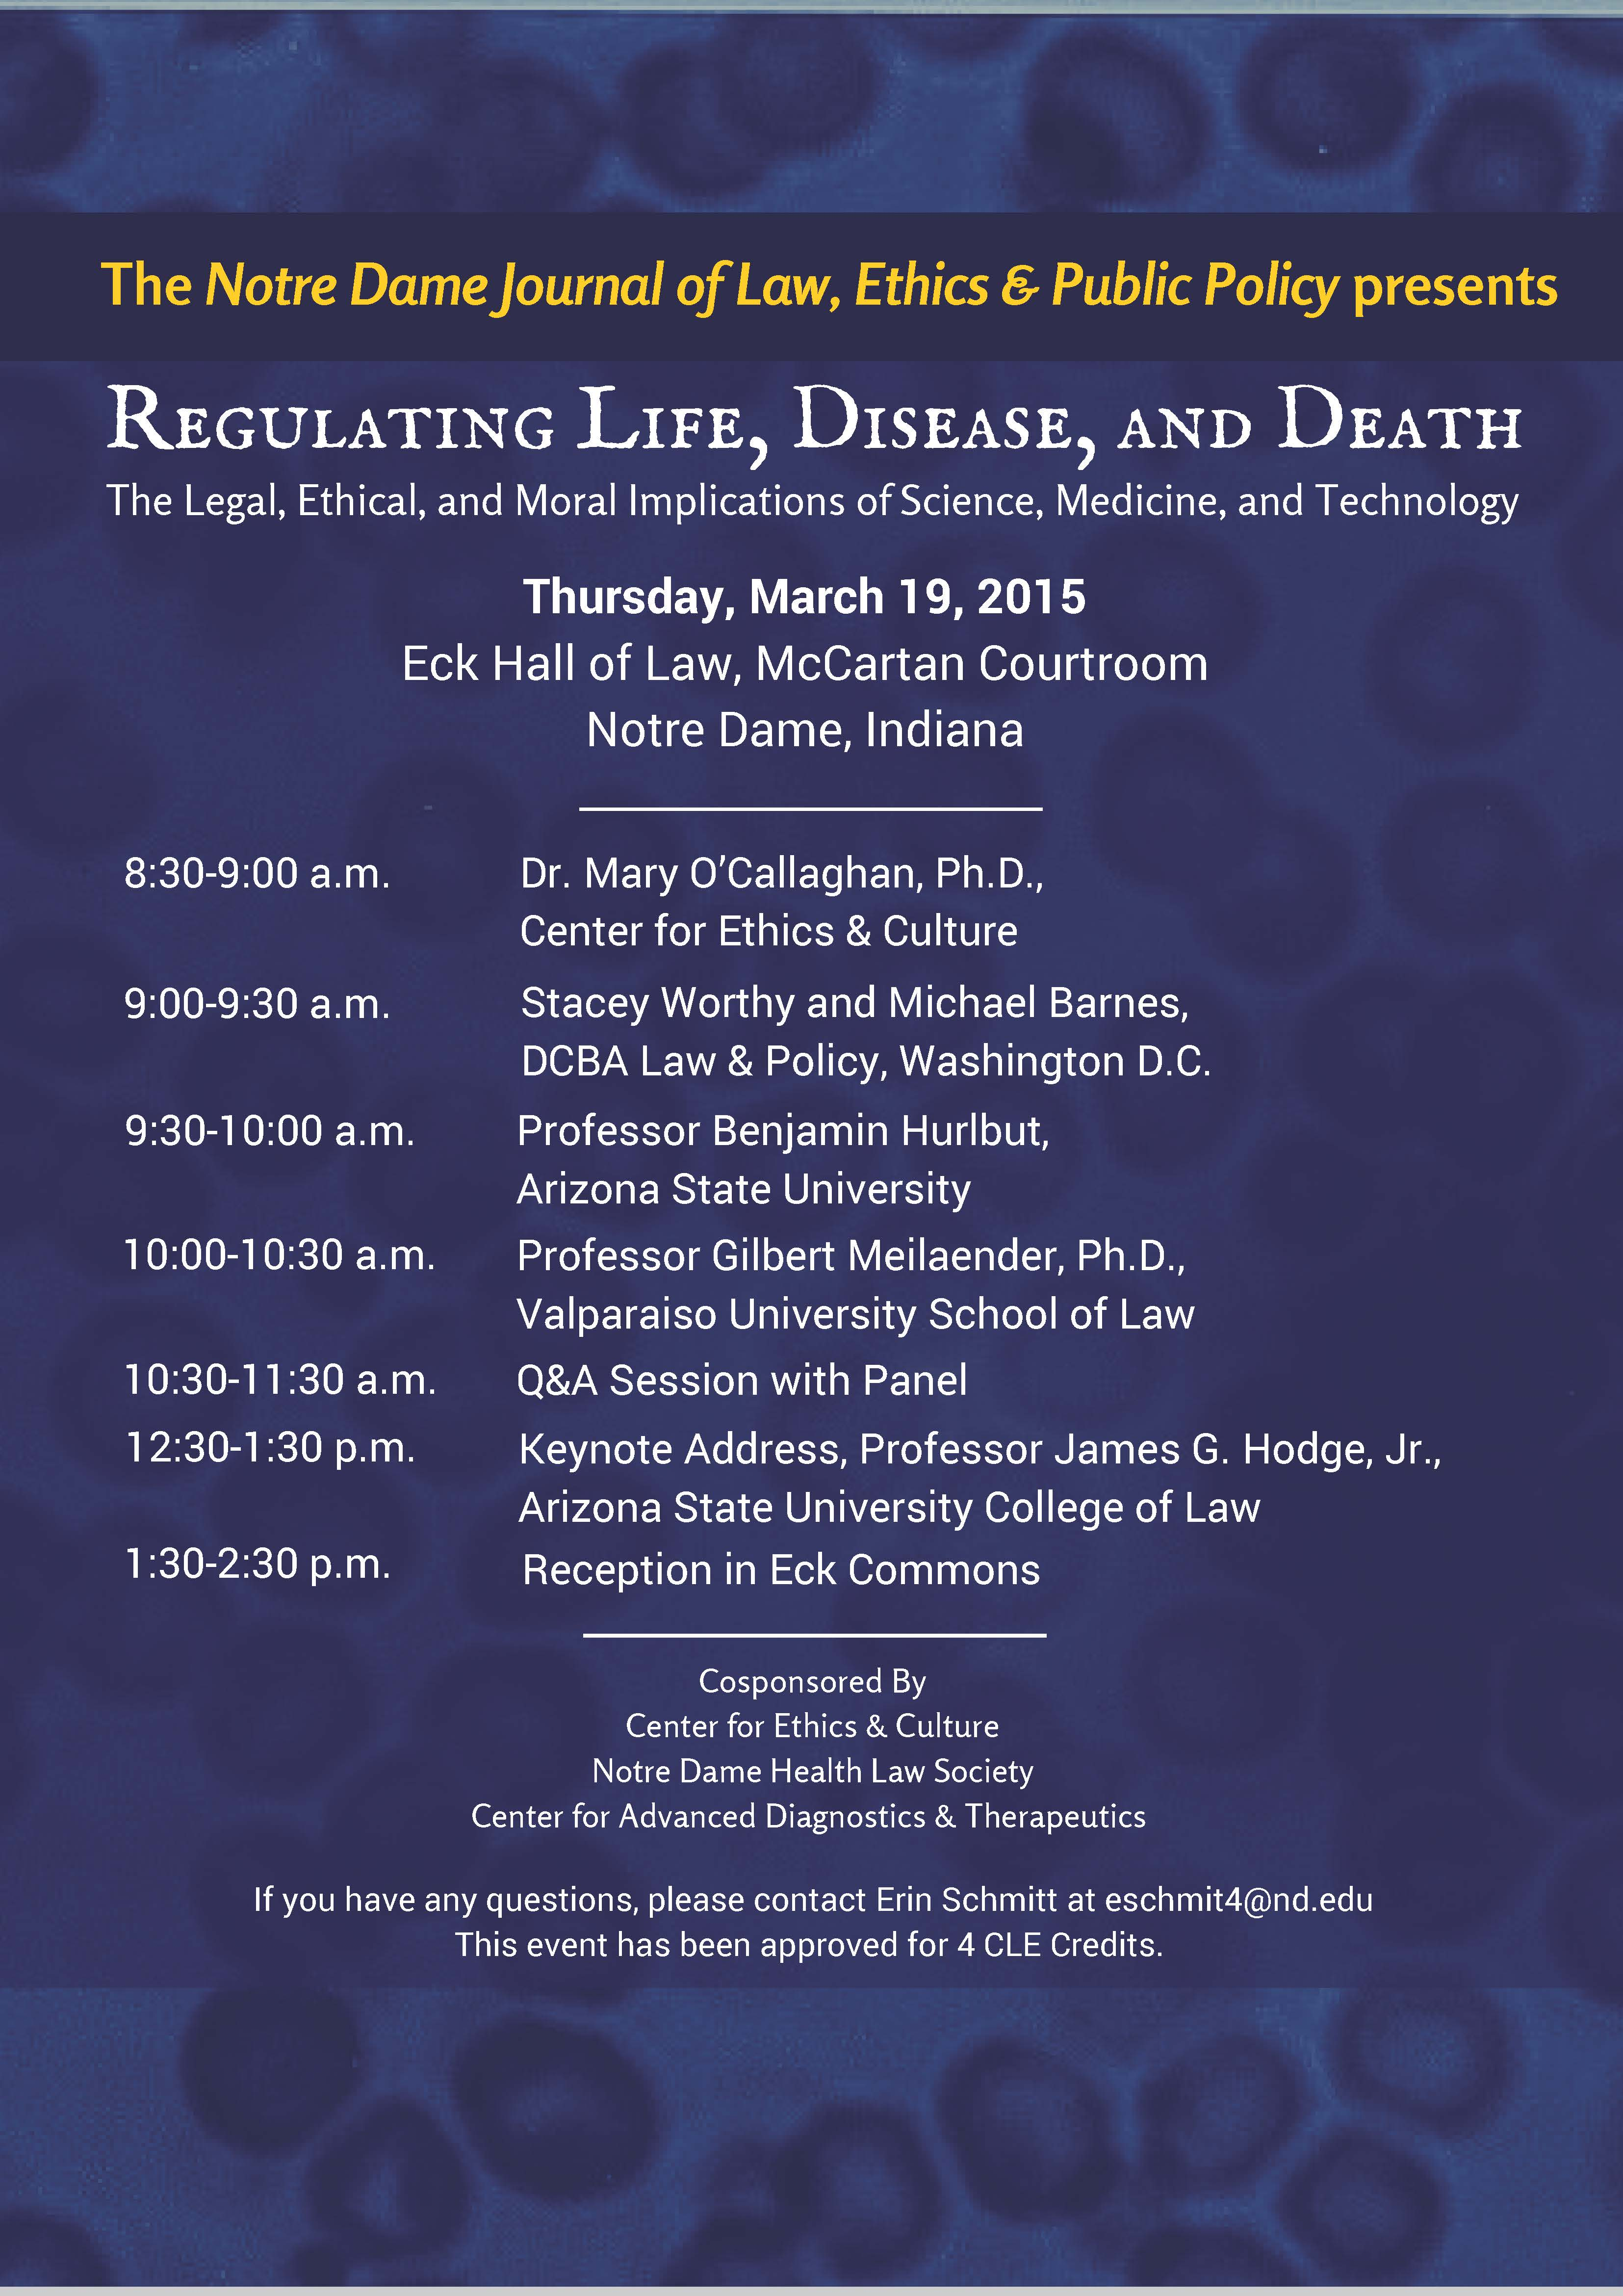 2015 - Regulating Life, Disease, and Death